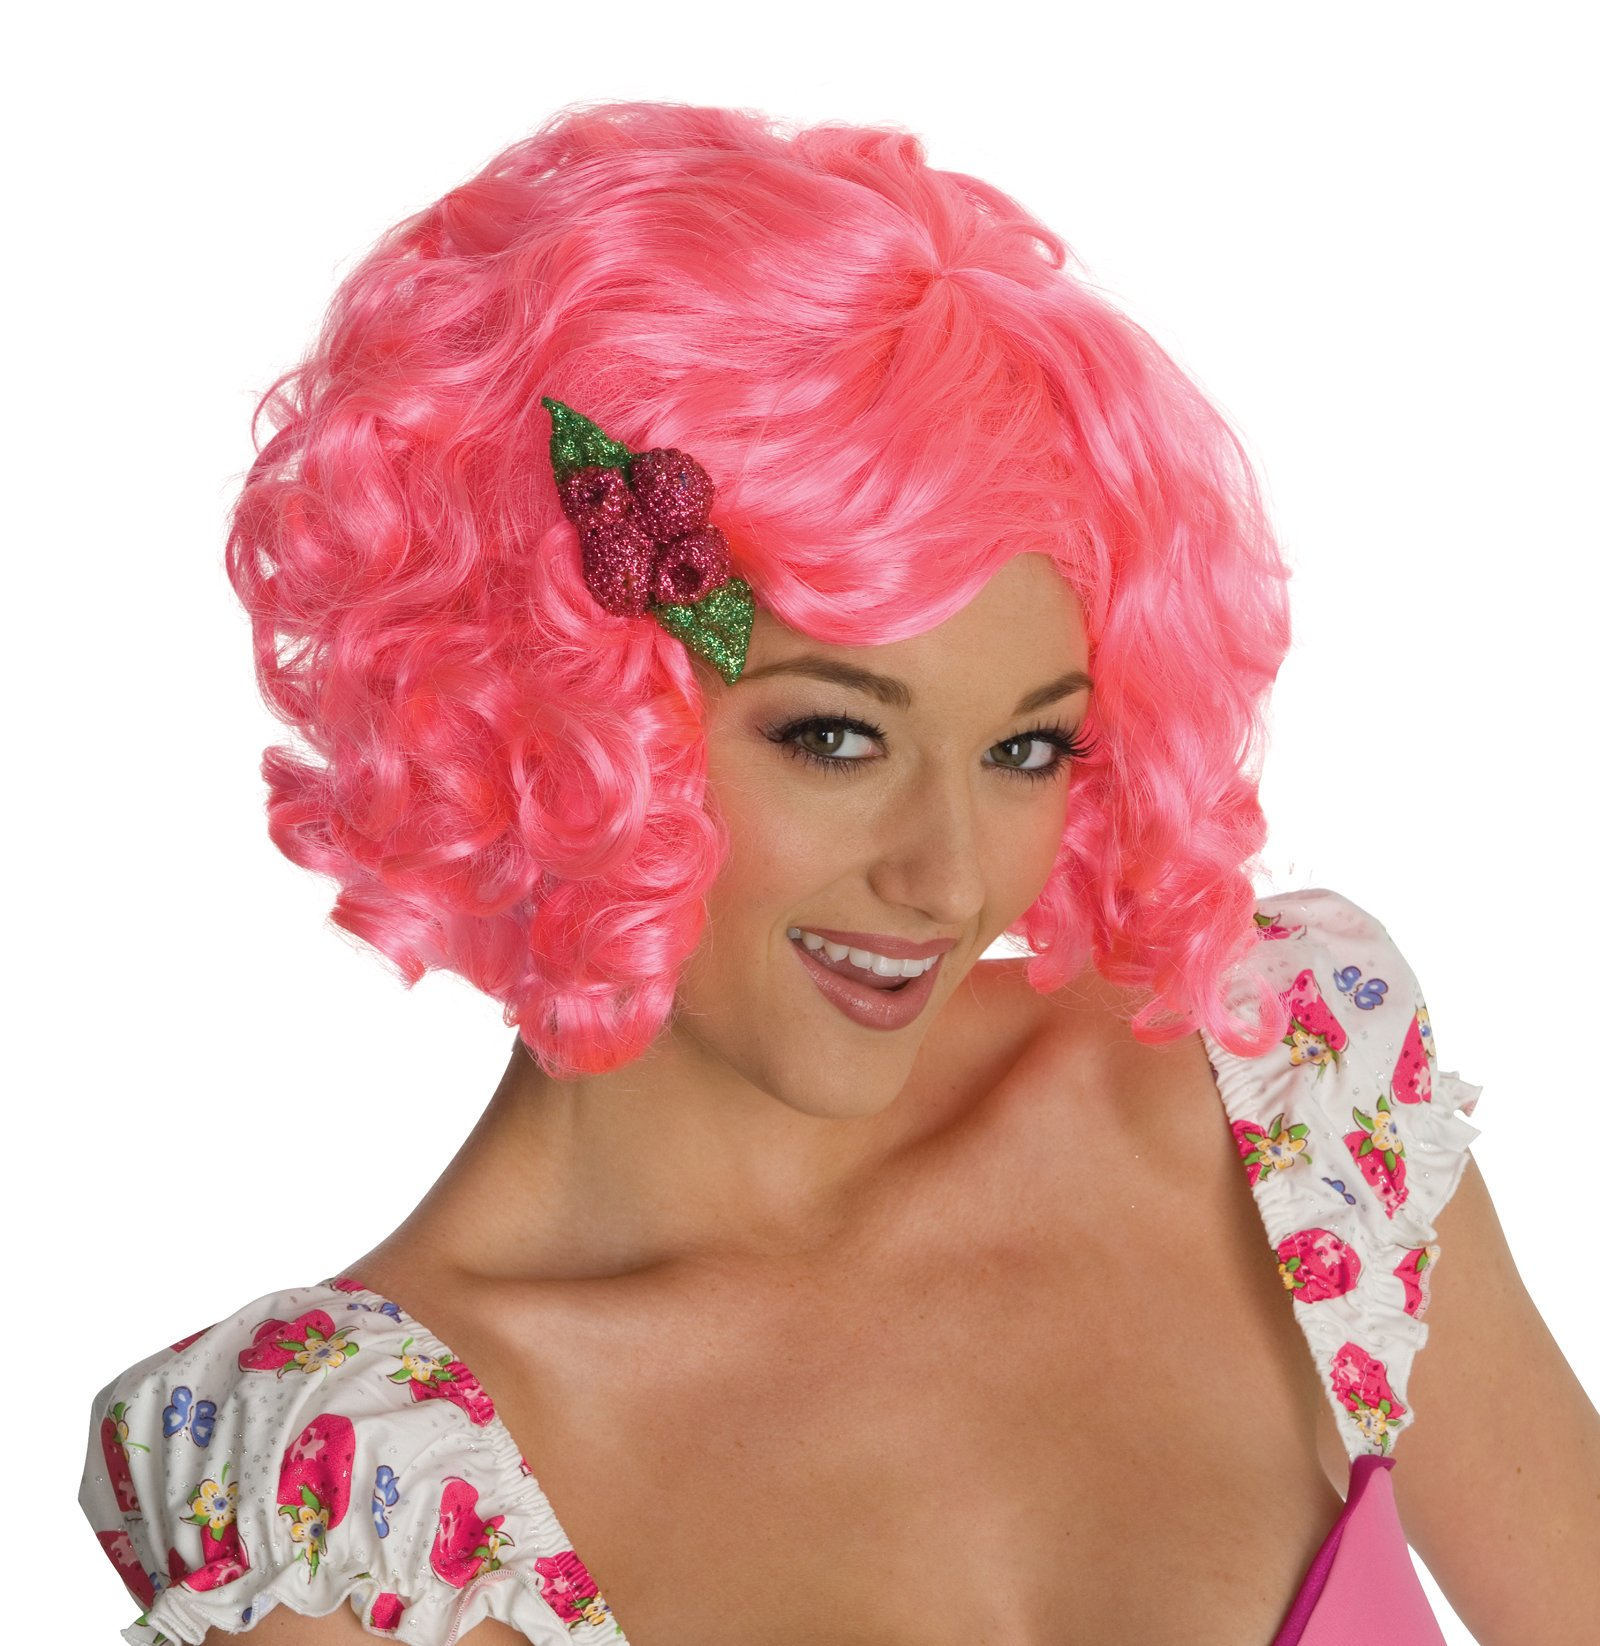 Strawberry Shortcake - Raspberry Tart Wig (Adult)